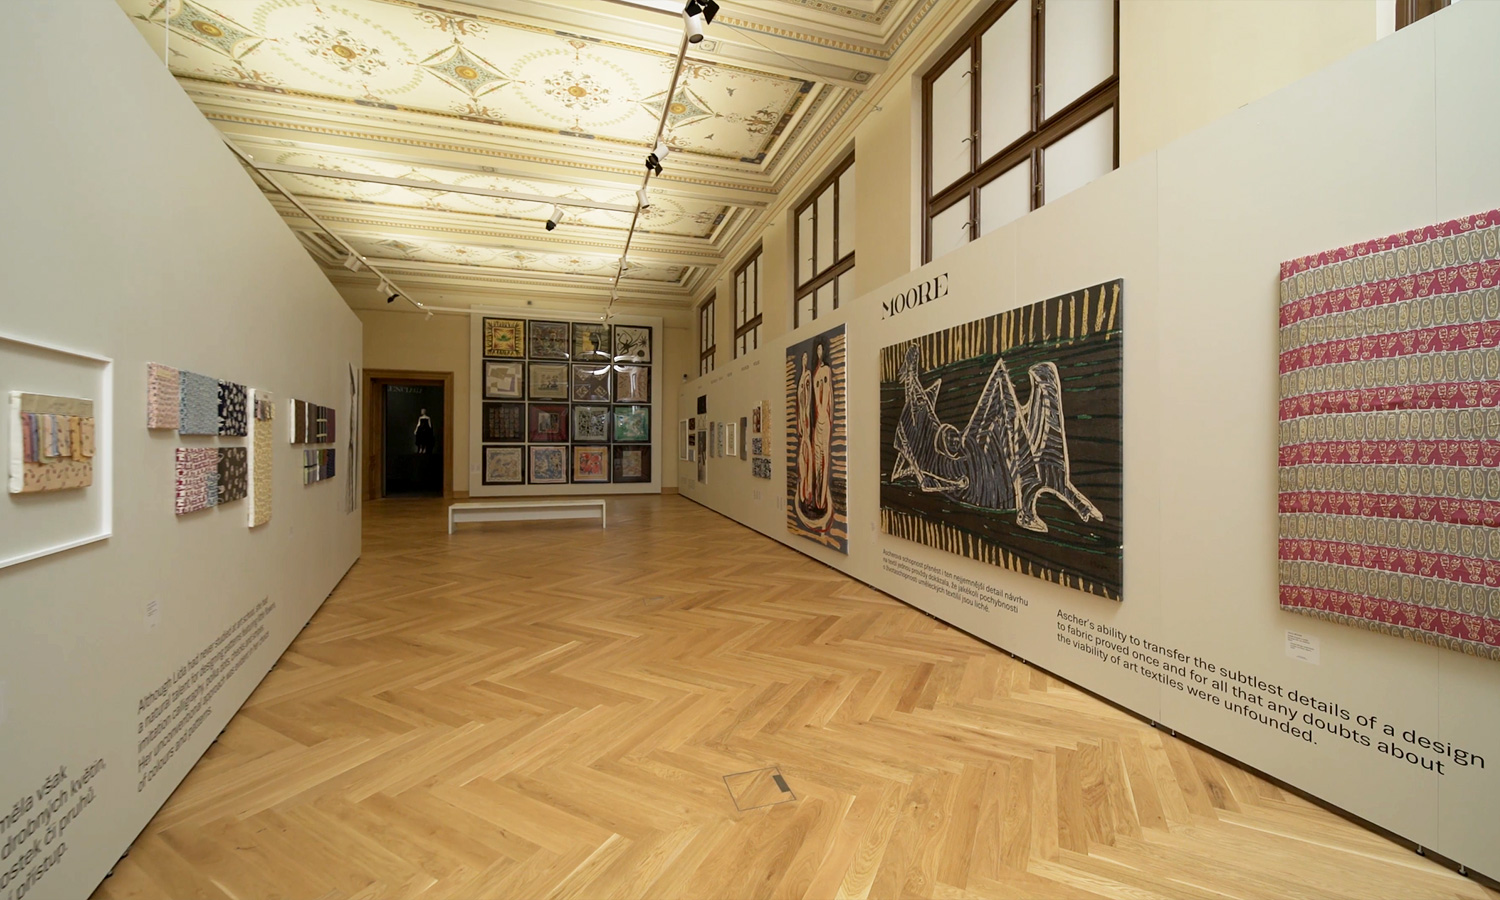 Exhibition room with Mila-wall technology at the Museum of Decorative Arts Prague